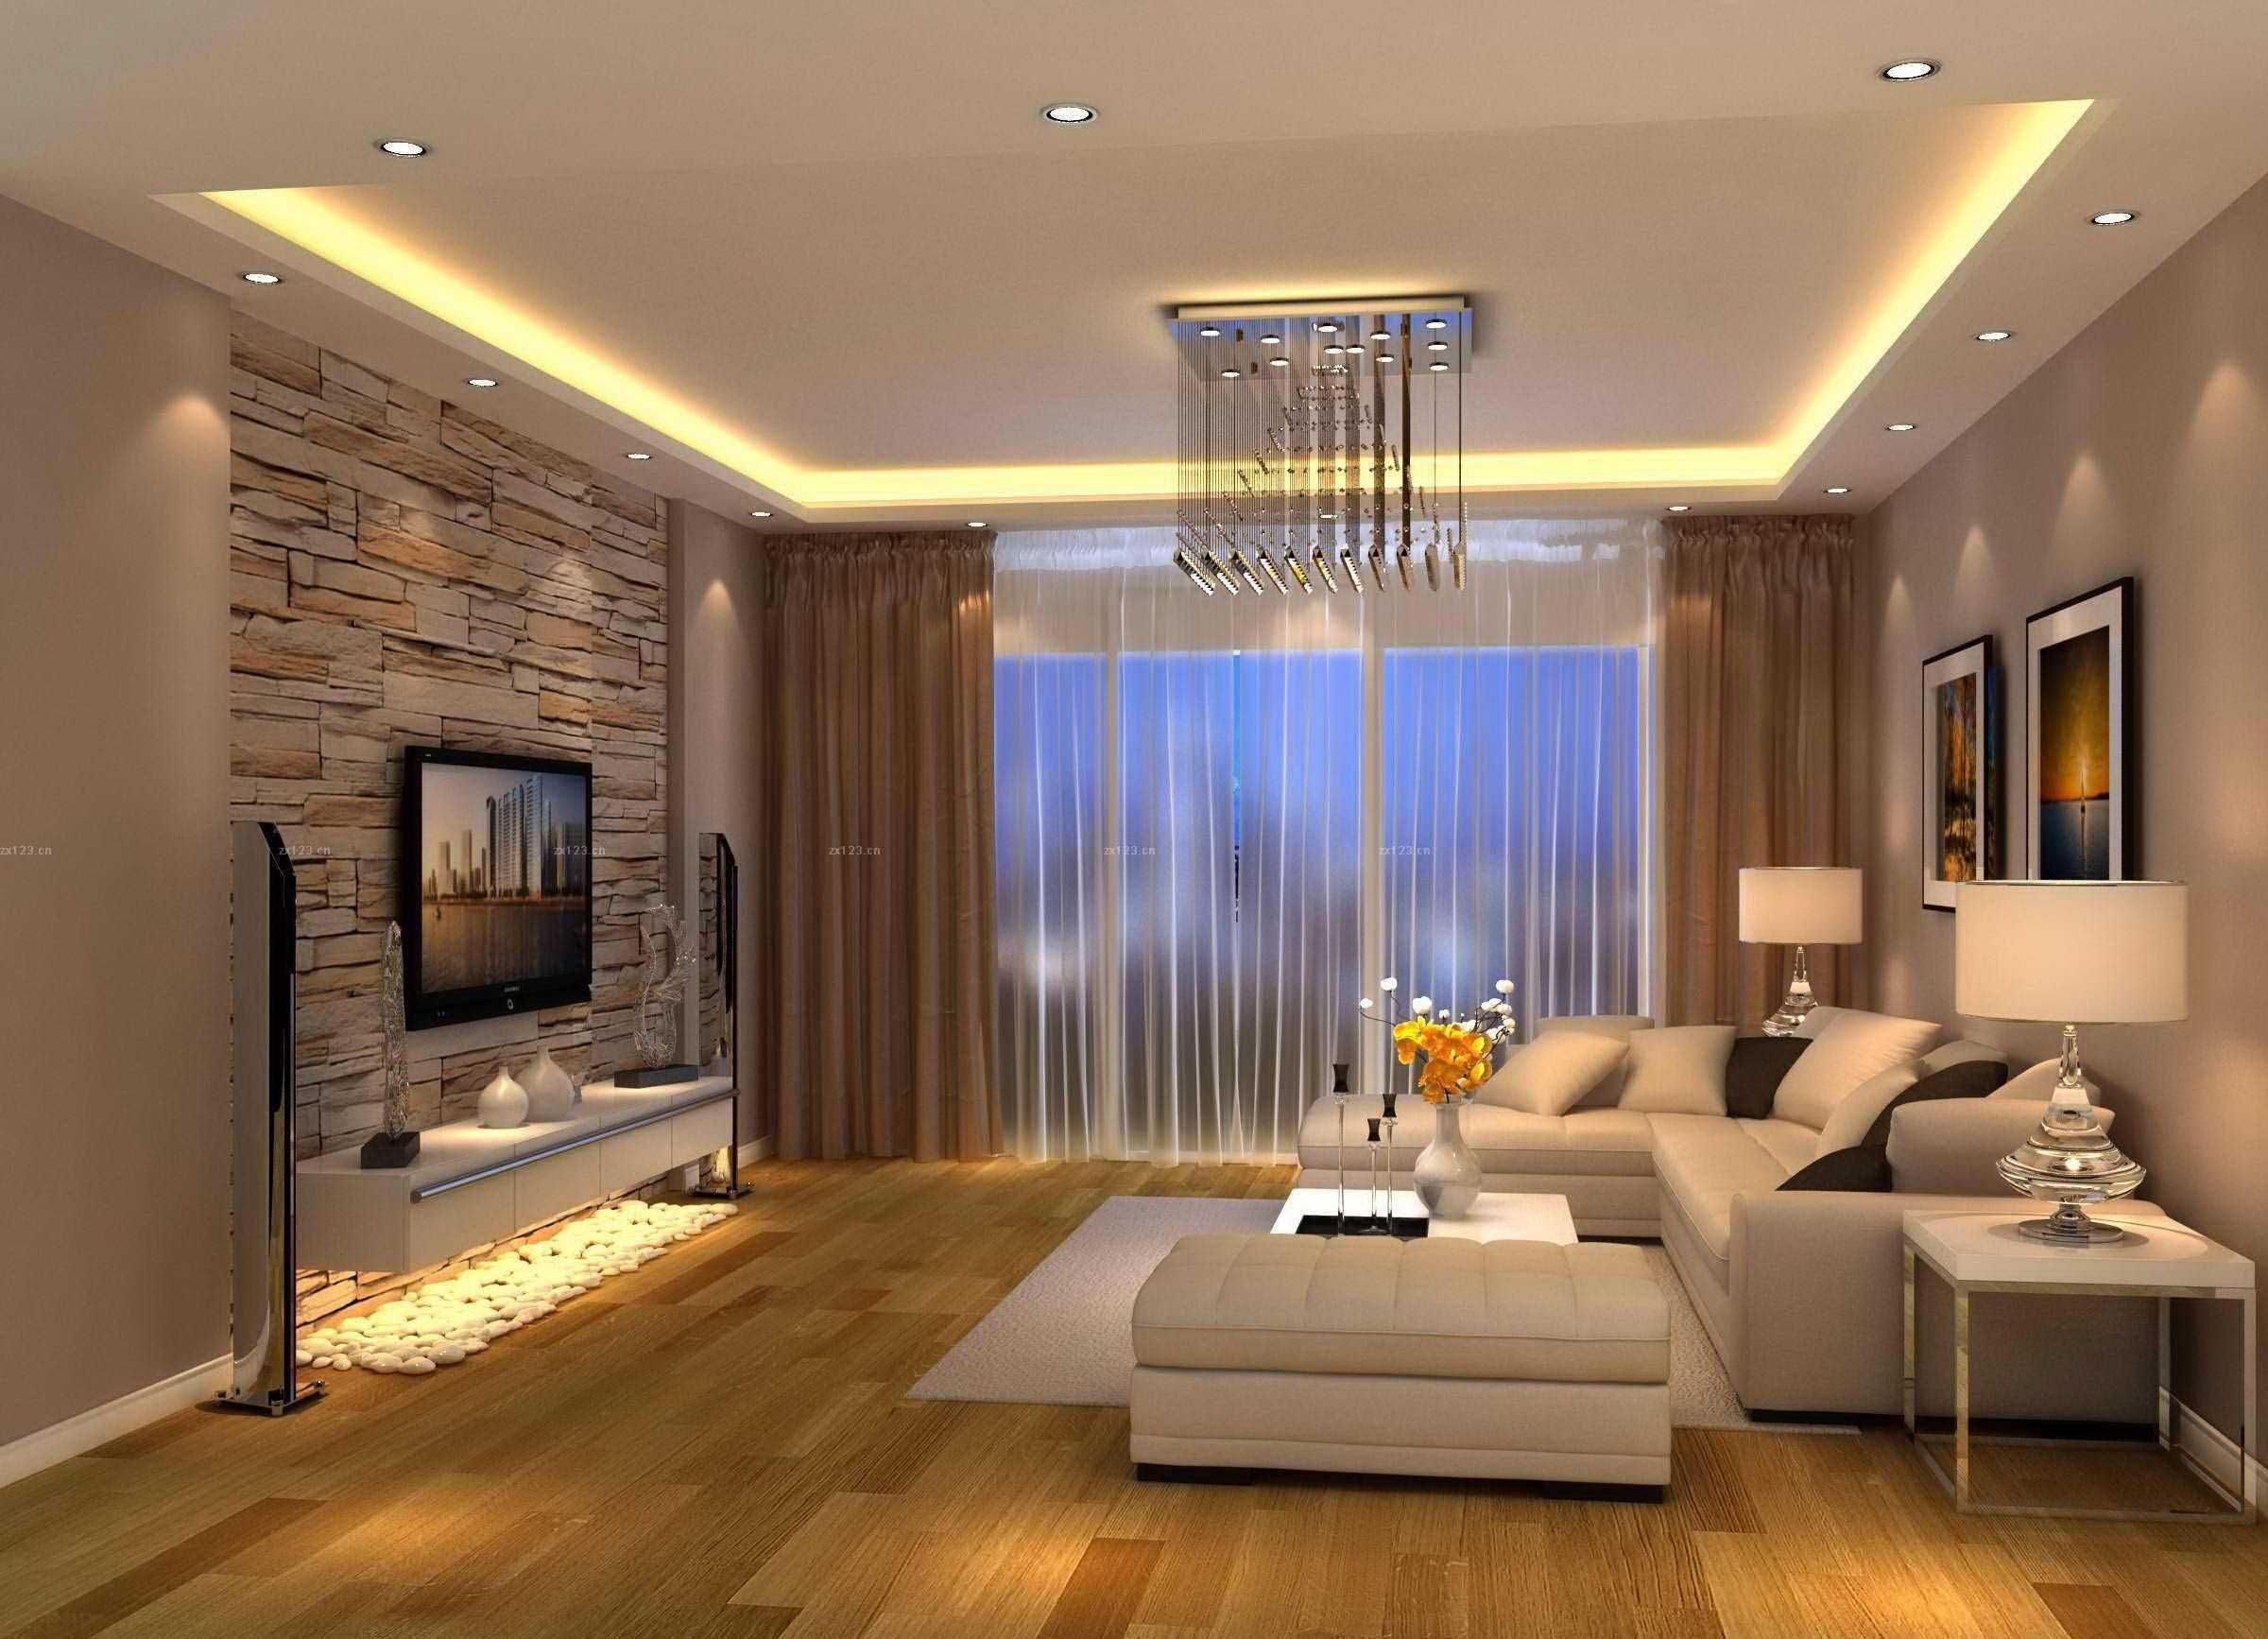 Beautiful Modern Living Room Ideas For A Perfectly Country Meetup Manlikemarvinsparks Com In 2020 Modern Living Room Brown Ceiling Design Living Room Living Room Decor Modern